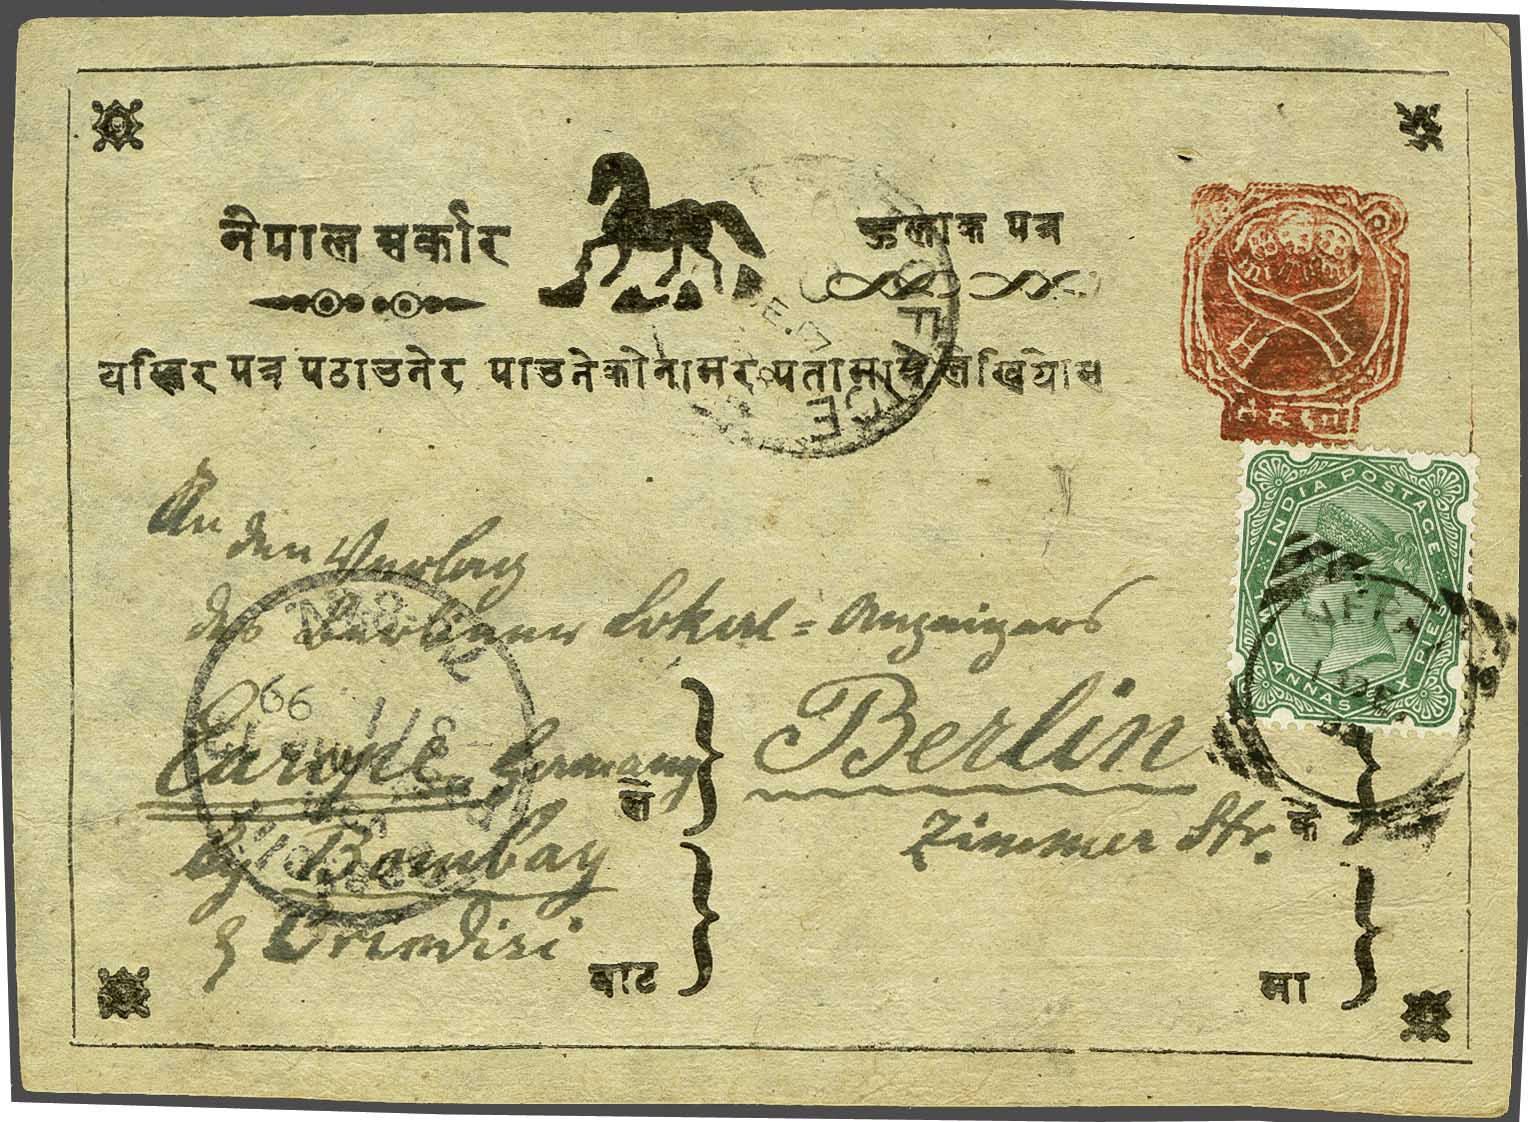 Lot 24 - Great Britain and former colonies Nepal -  Corinphila Veilingen Auction 245-246 Day 1 - Nepal - The Dick van der Wateren Collection, Foreign countries - Single lots, Picture postcards